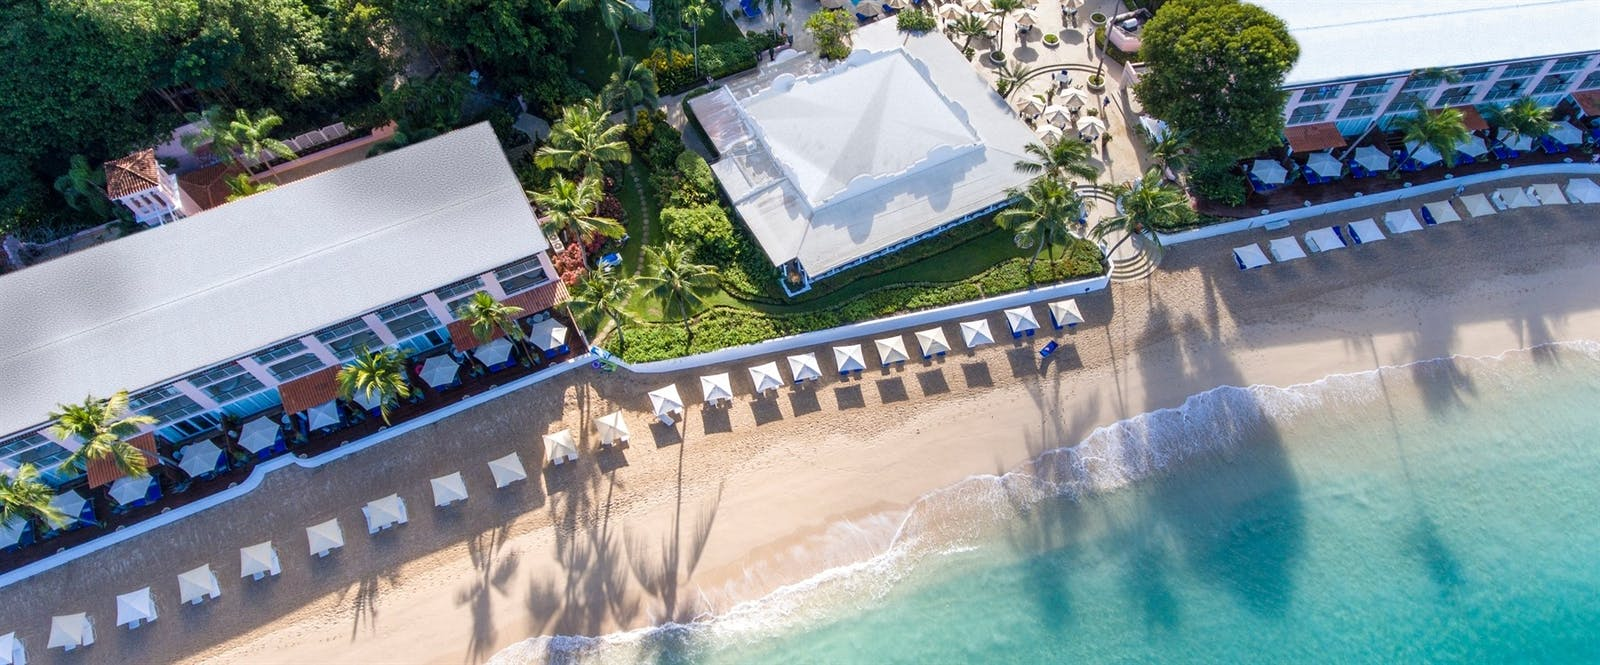 Aerial View of Beach at Fairmont Royal Pavilion, Barbados